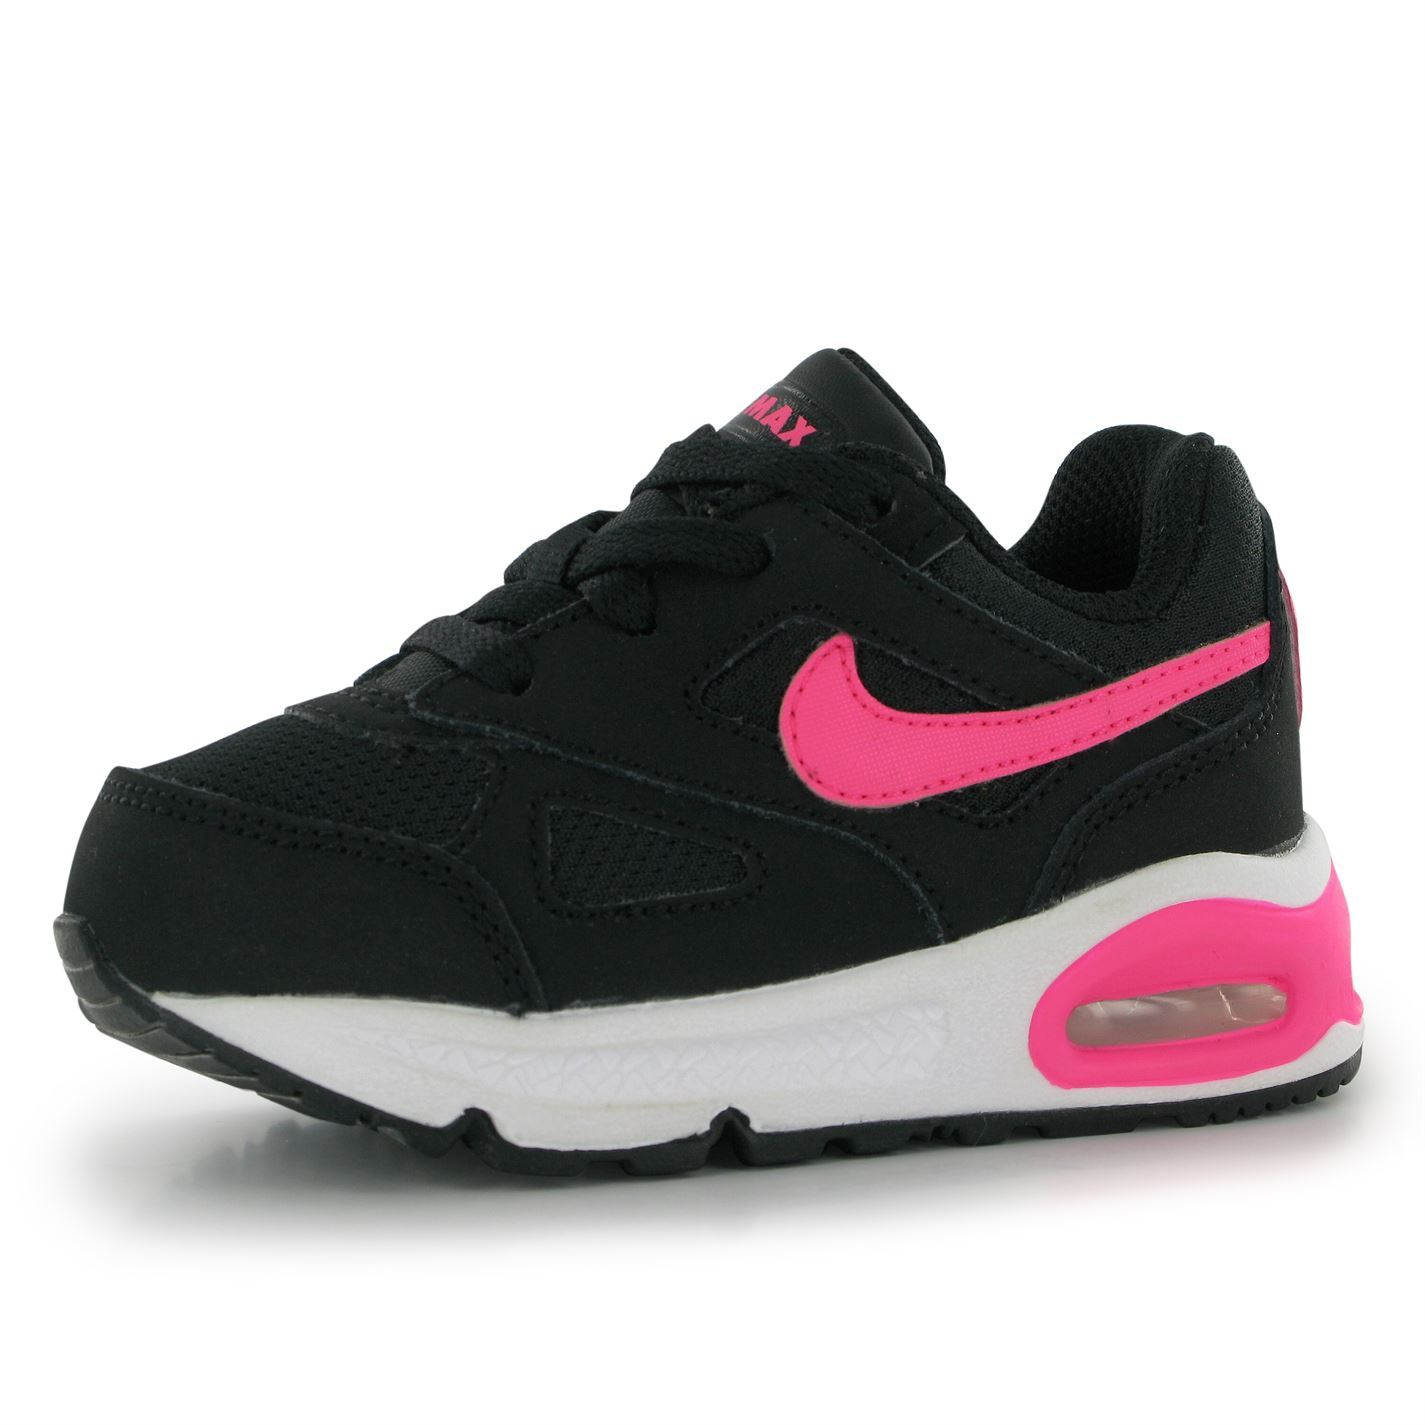 Nike Air Max Ivo Trainers Infants Girls Black Pink Baby Sneakers